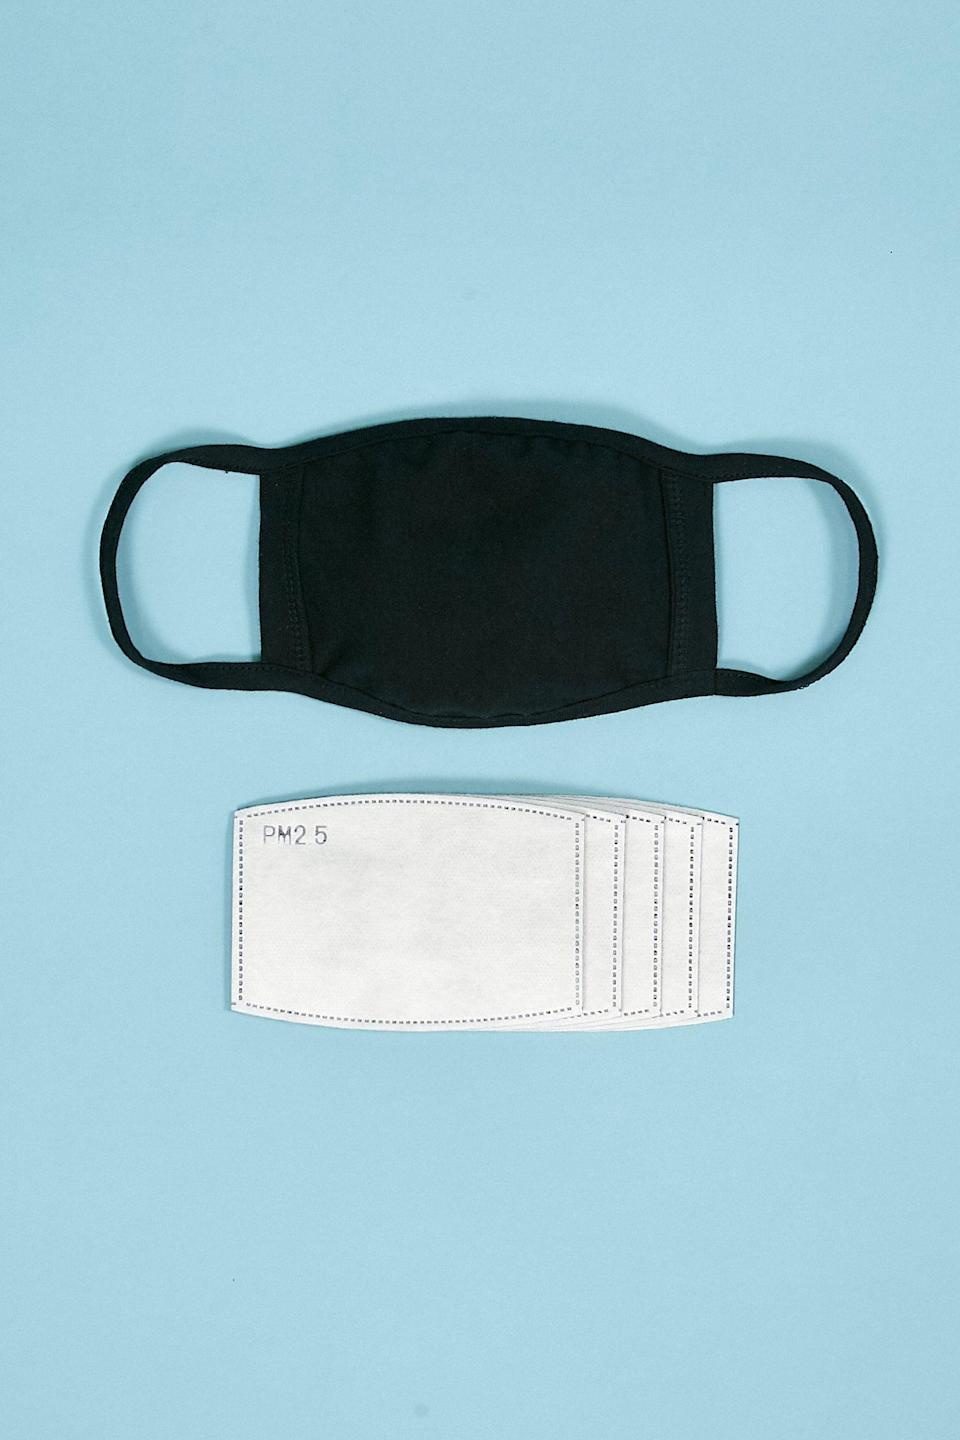 <p>You can't go wrong with this all-black <span>Filter Included Pocket Cloth Face Mask</span> ($12).</p>